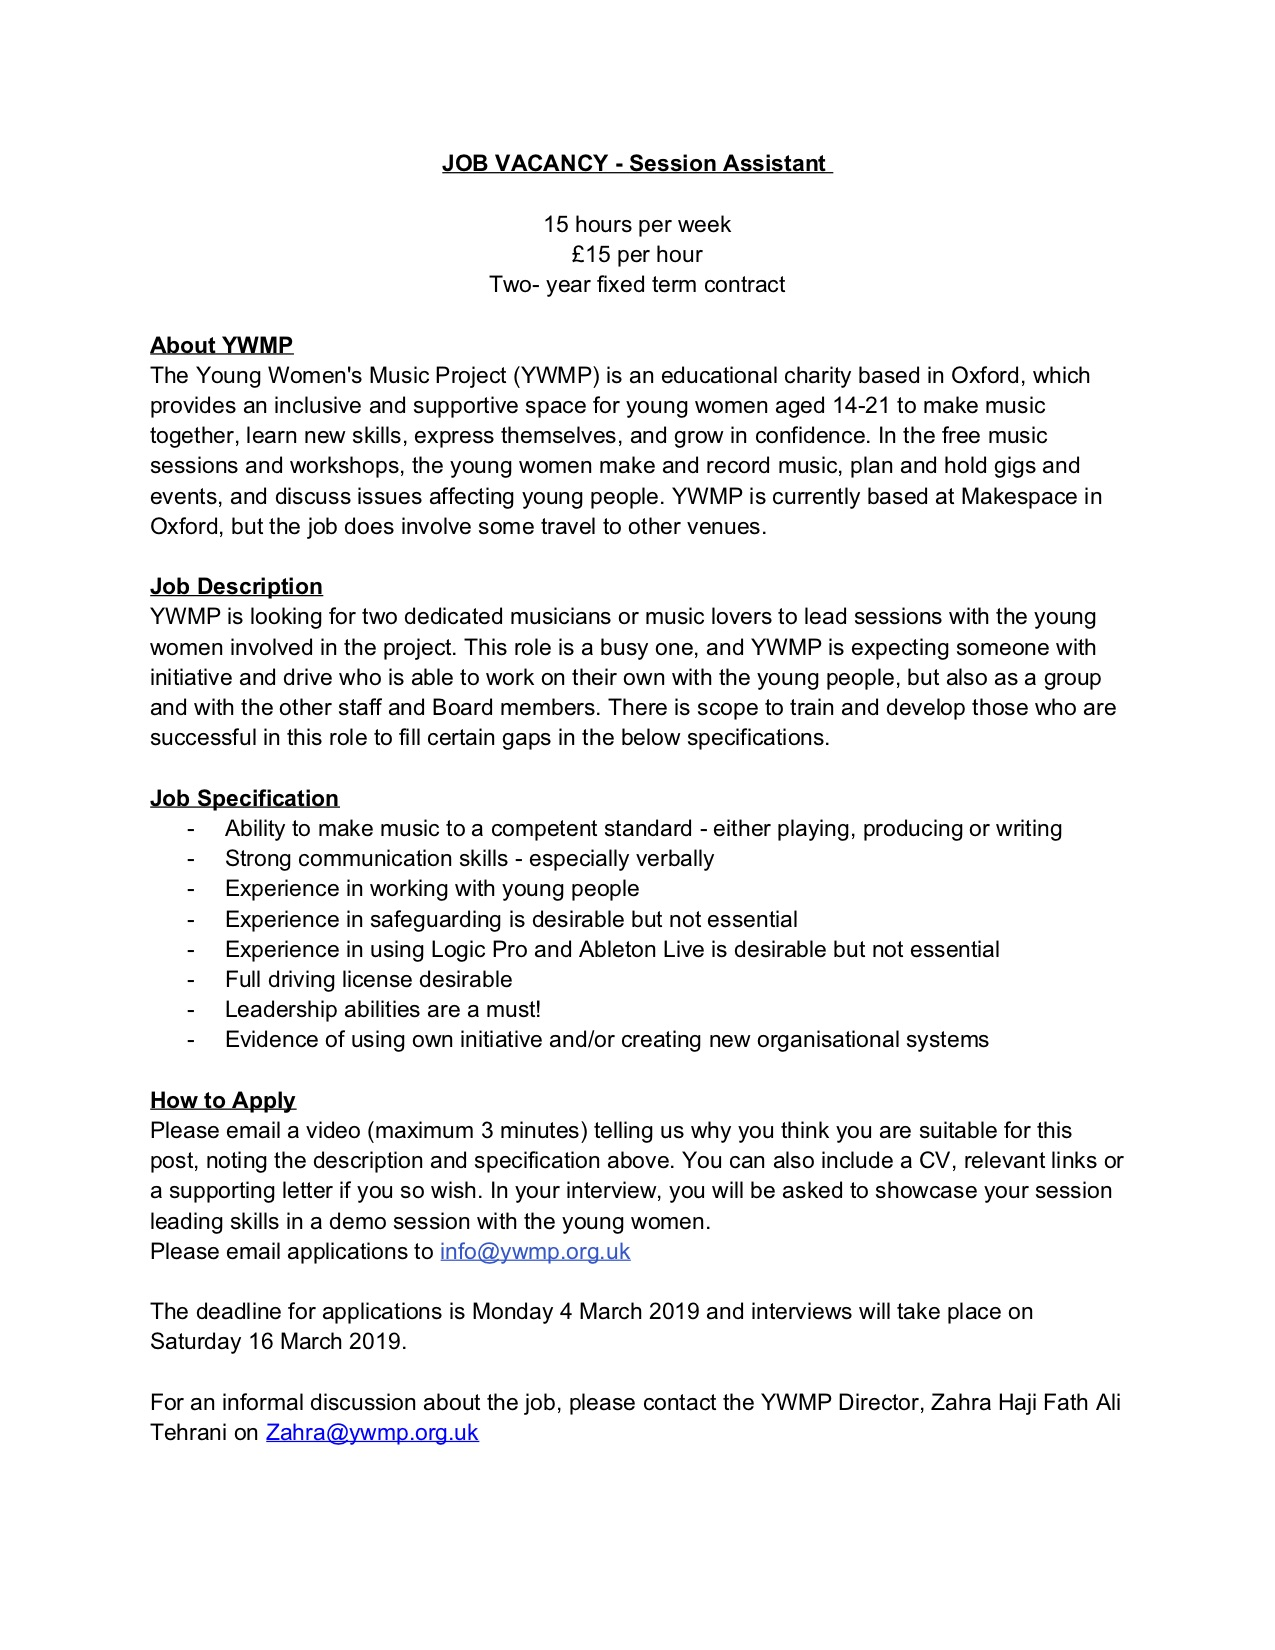 YWMP JOB VACANCY - Session Assistant.jpg